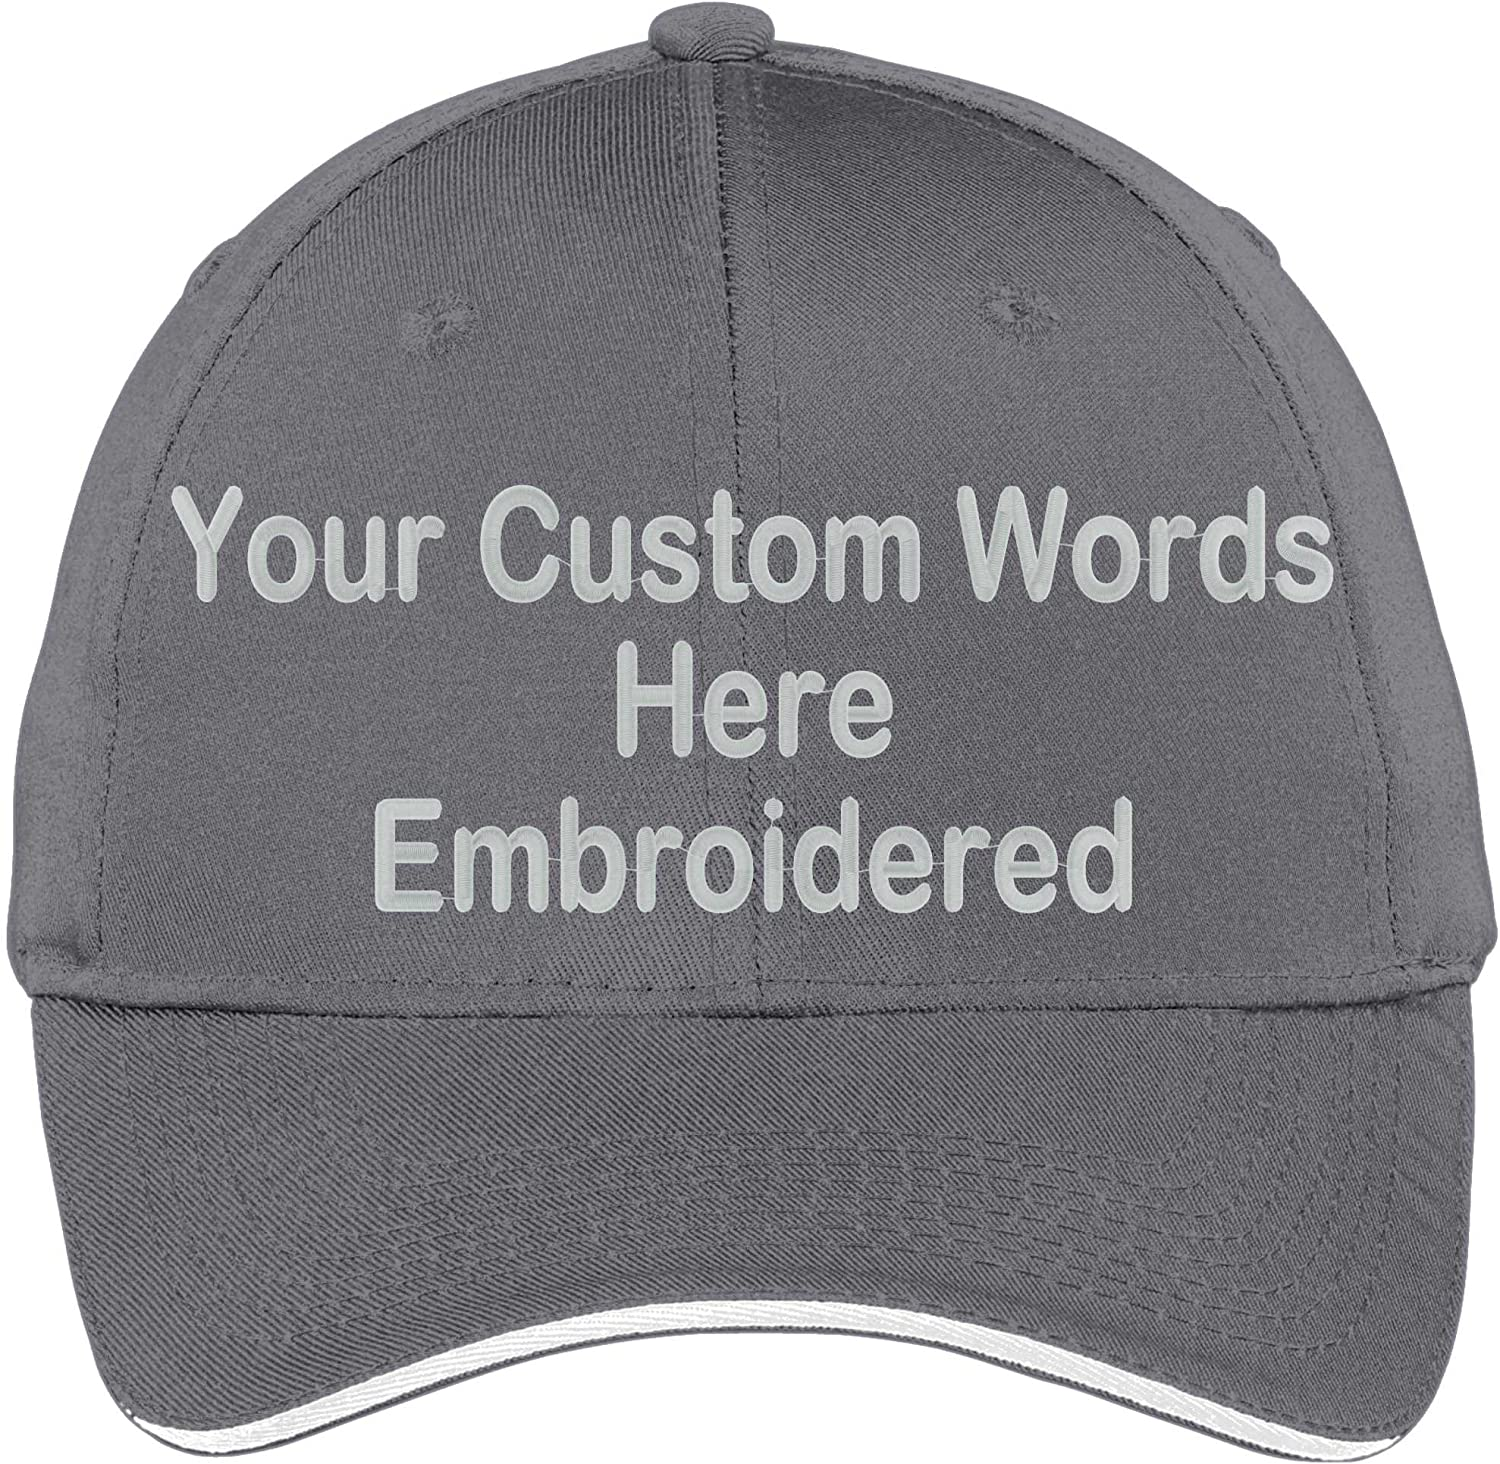 Custom Hat Add Your Own Text Embroidered Adjustable Size Curved Bill Cap